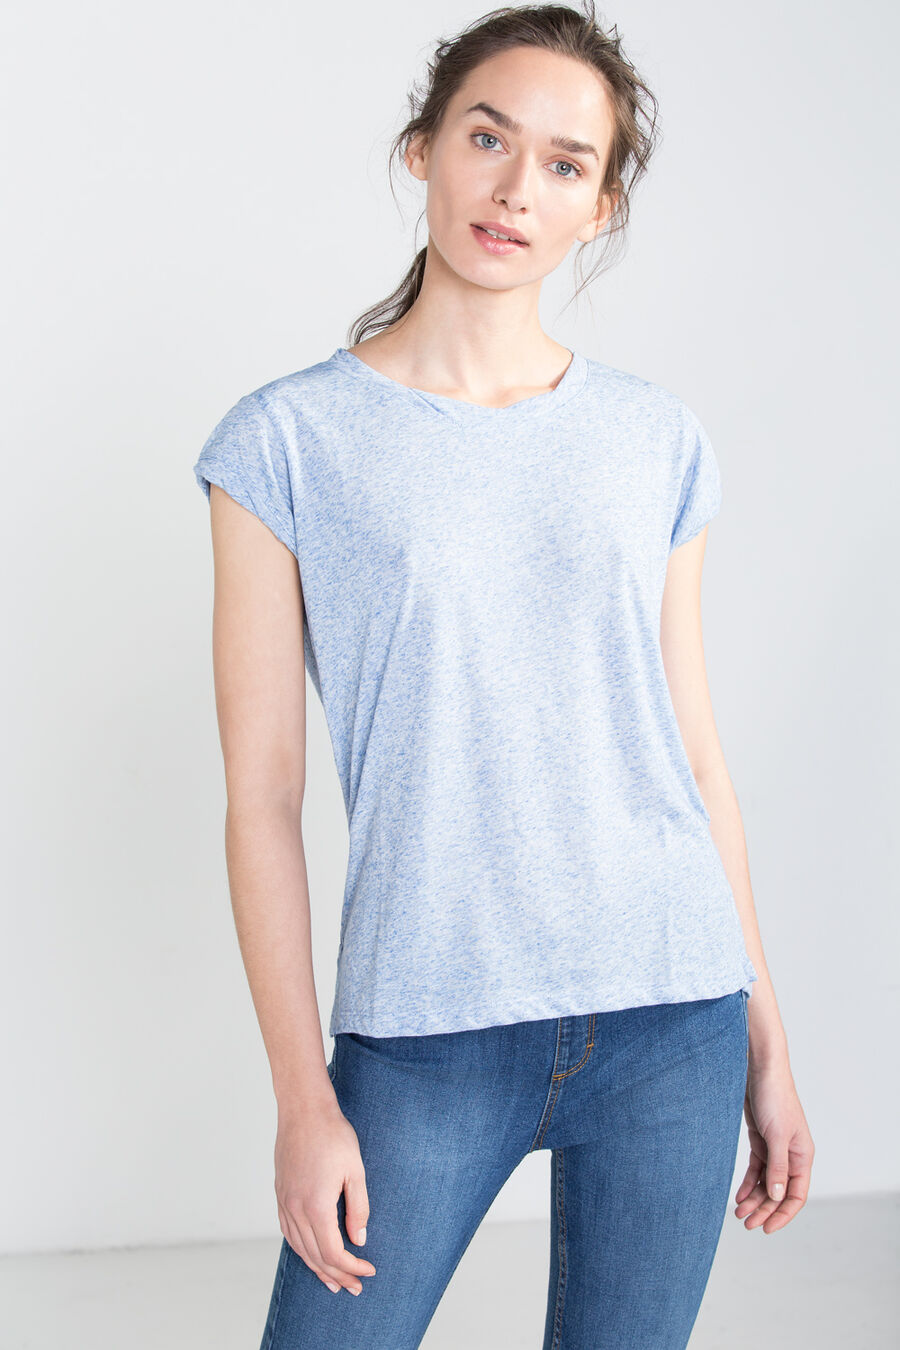 Mottled t-shirt